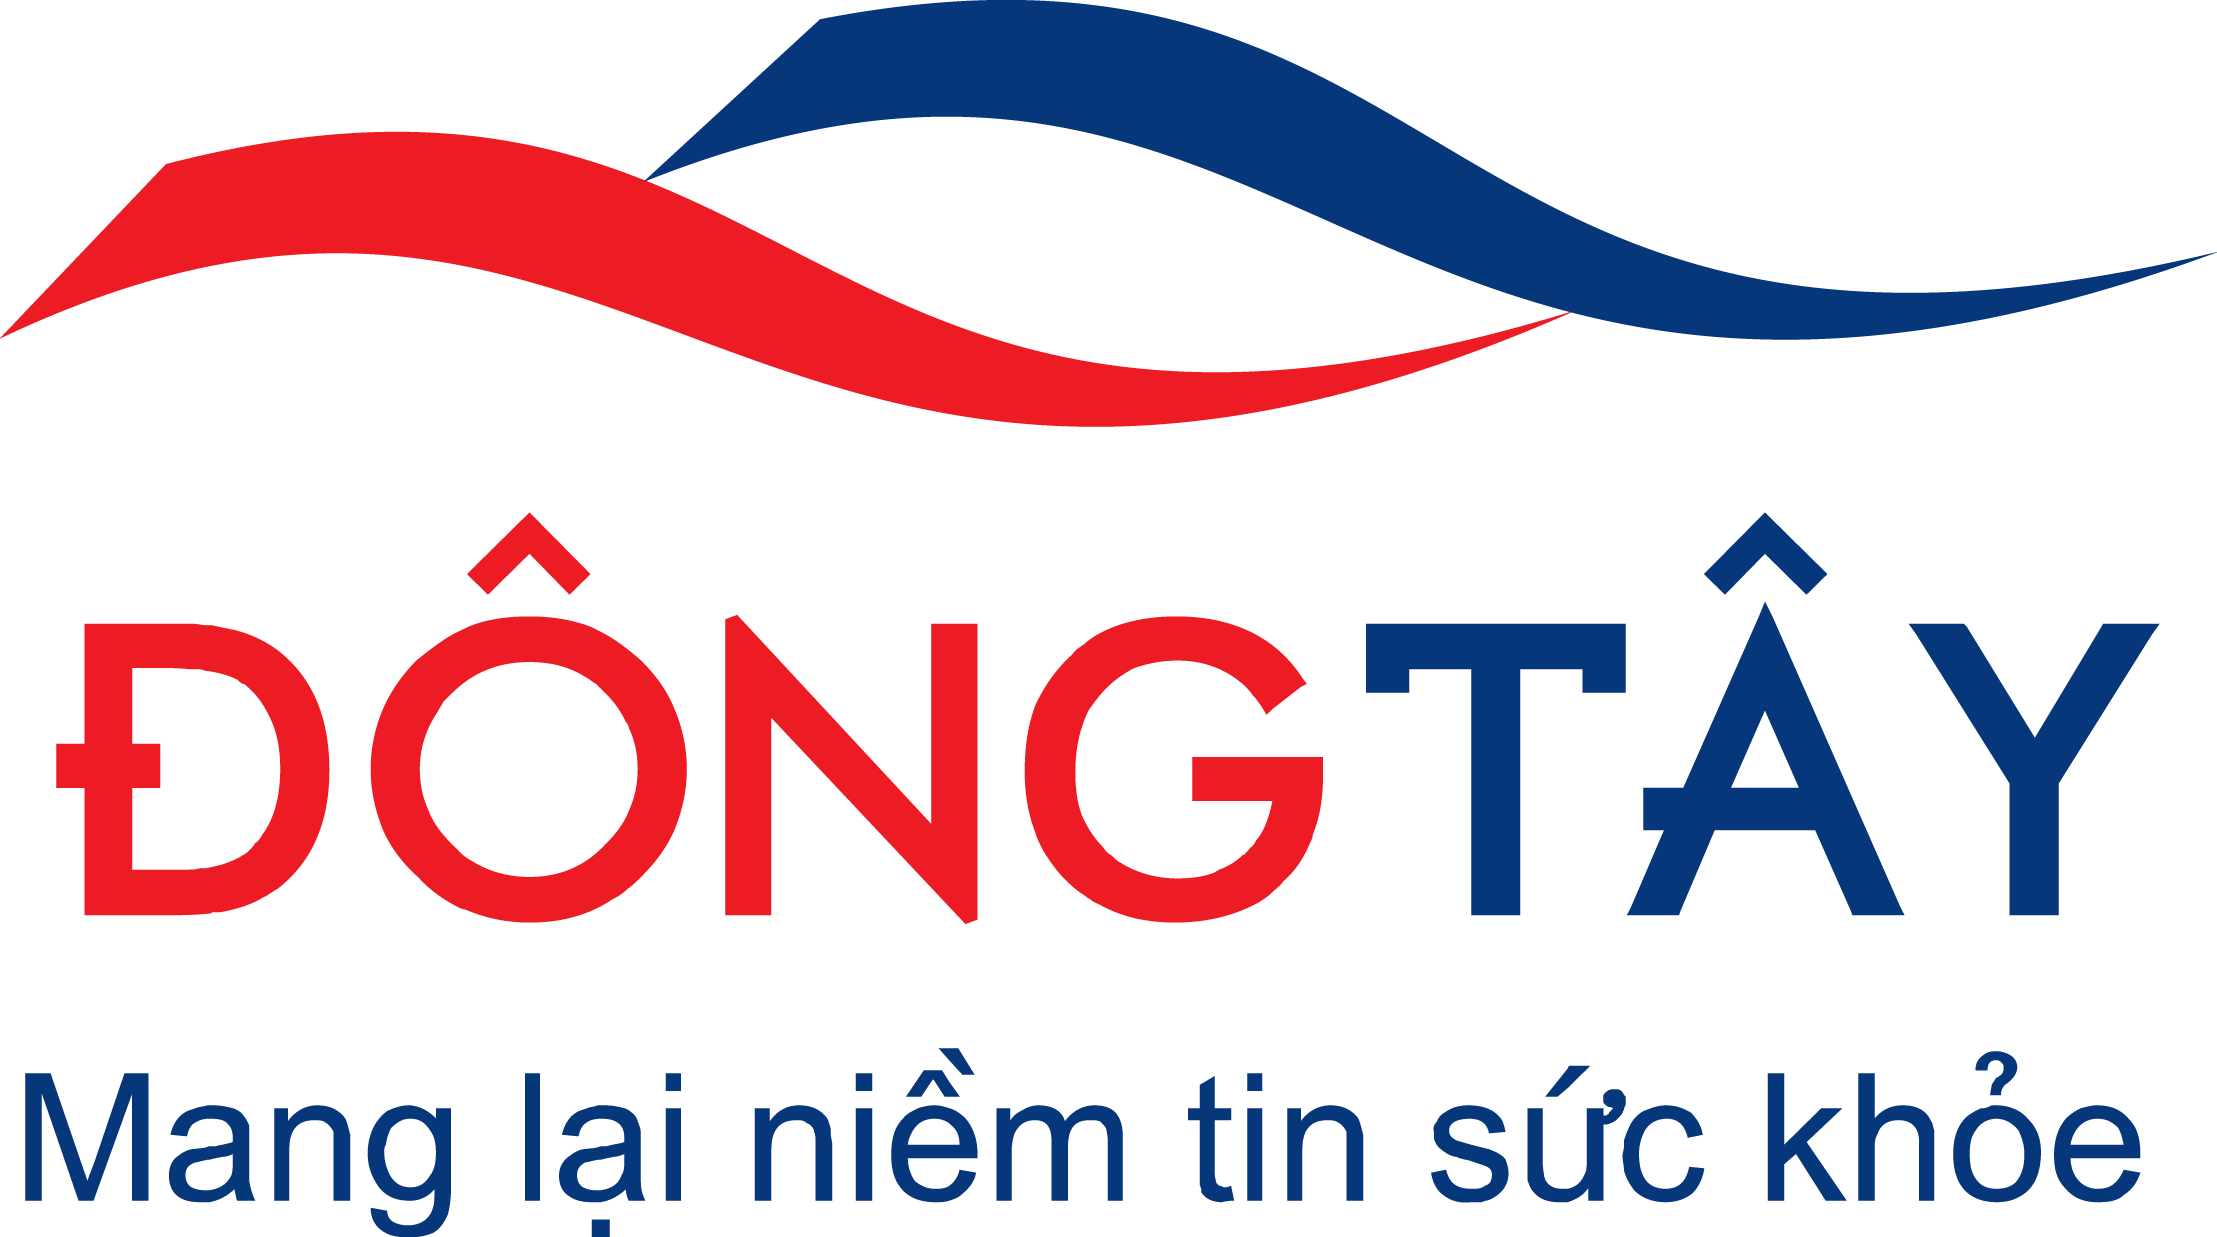 cong-ty-dong-tay